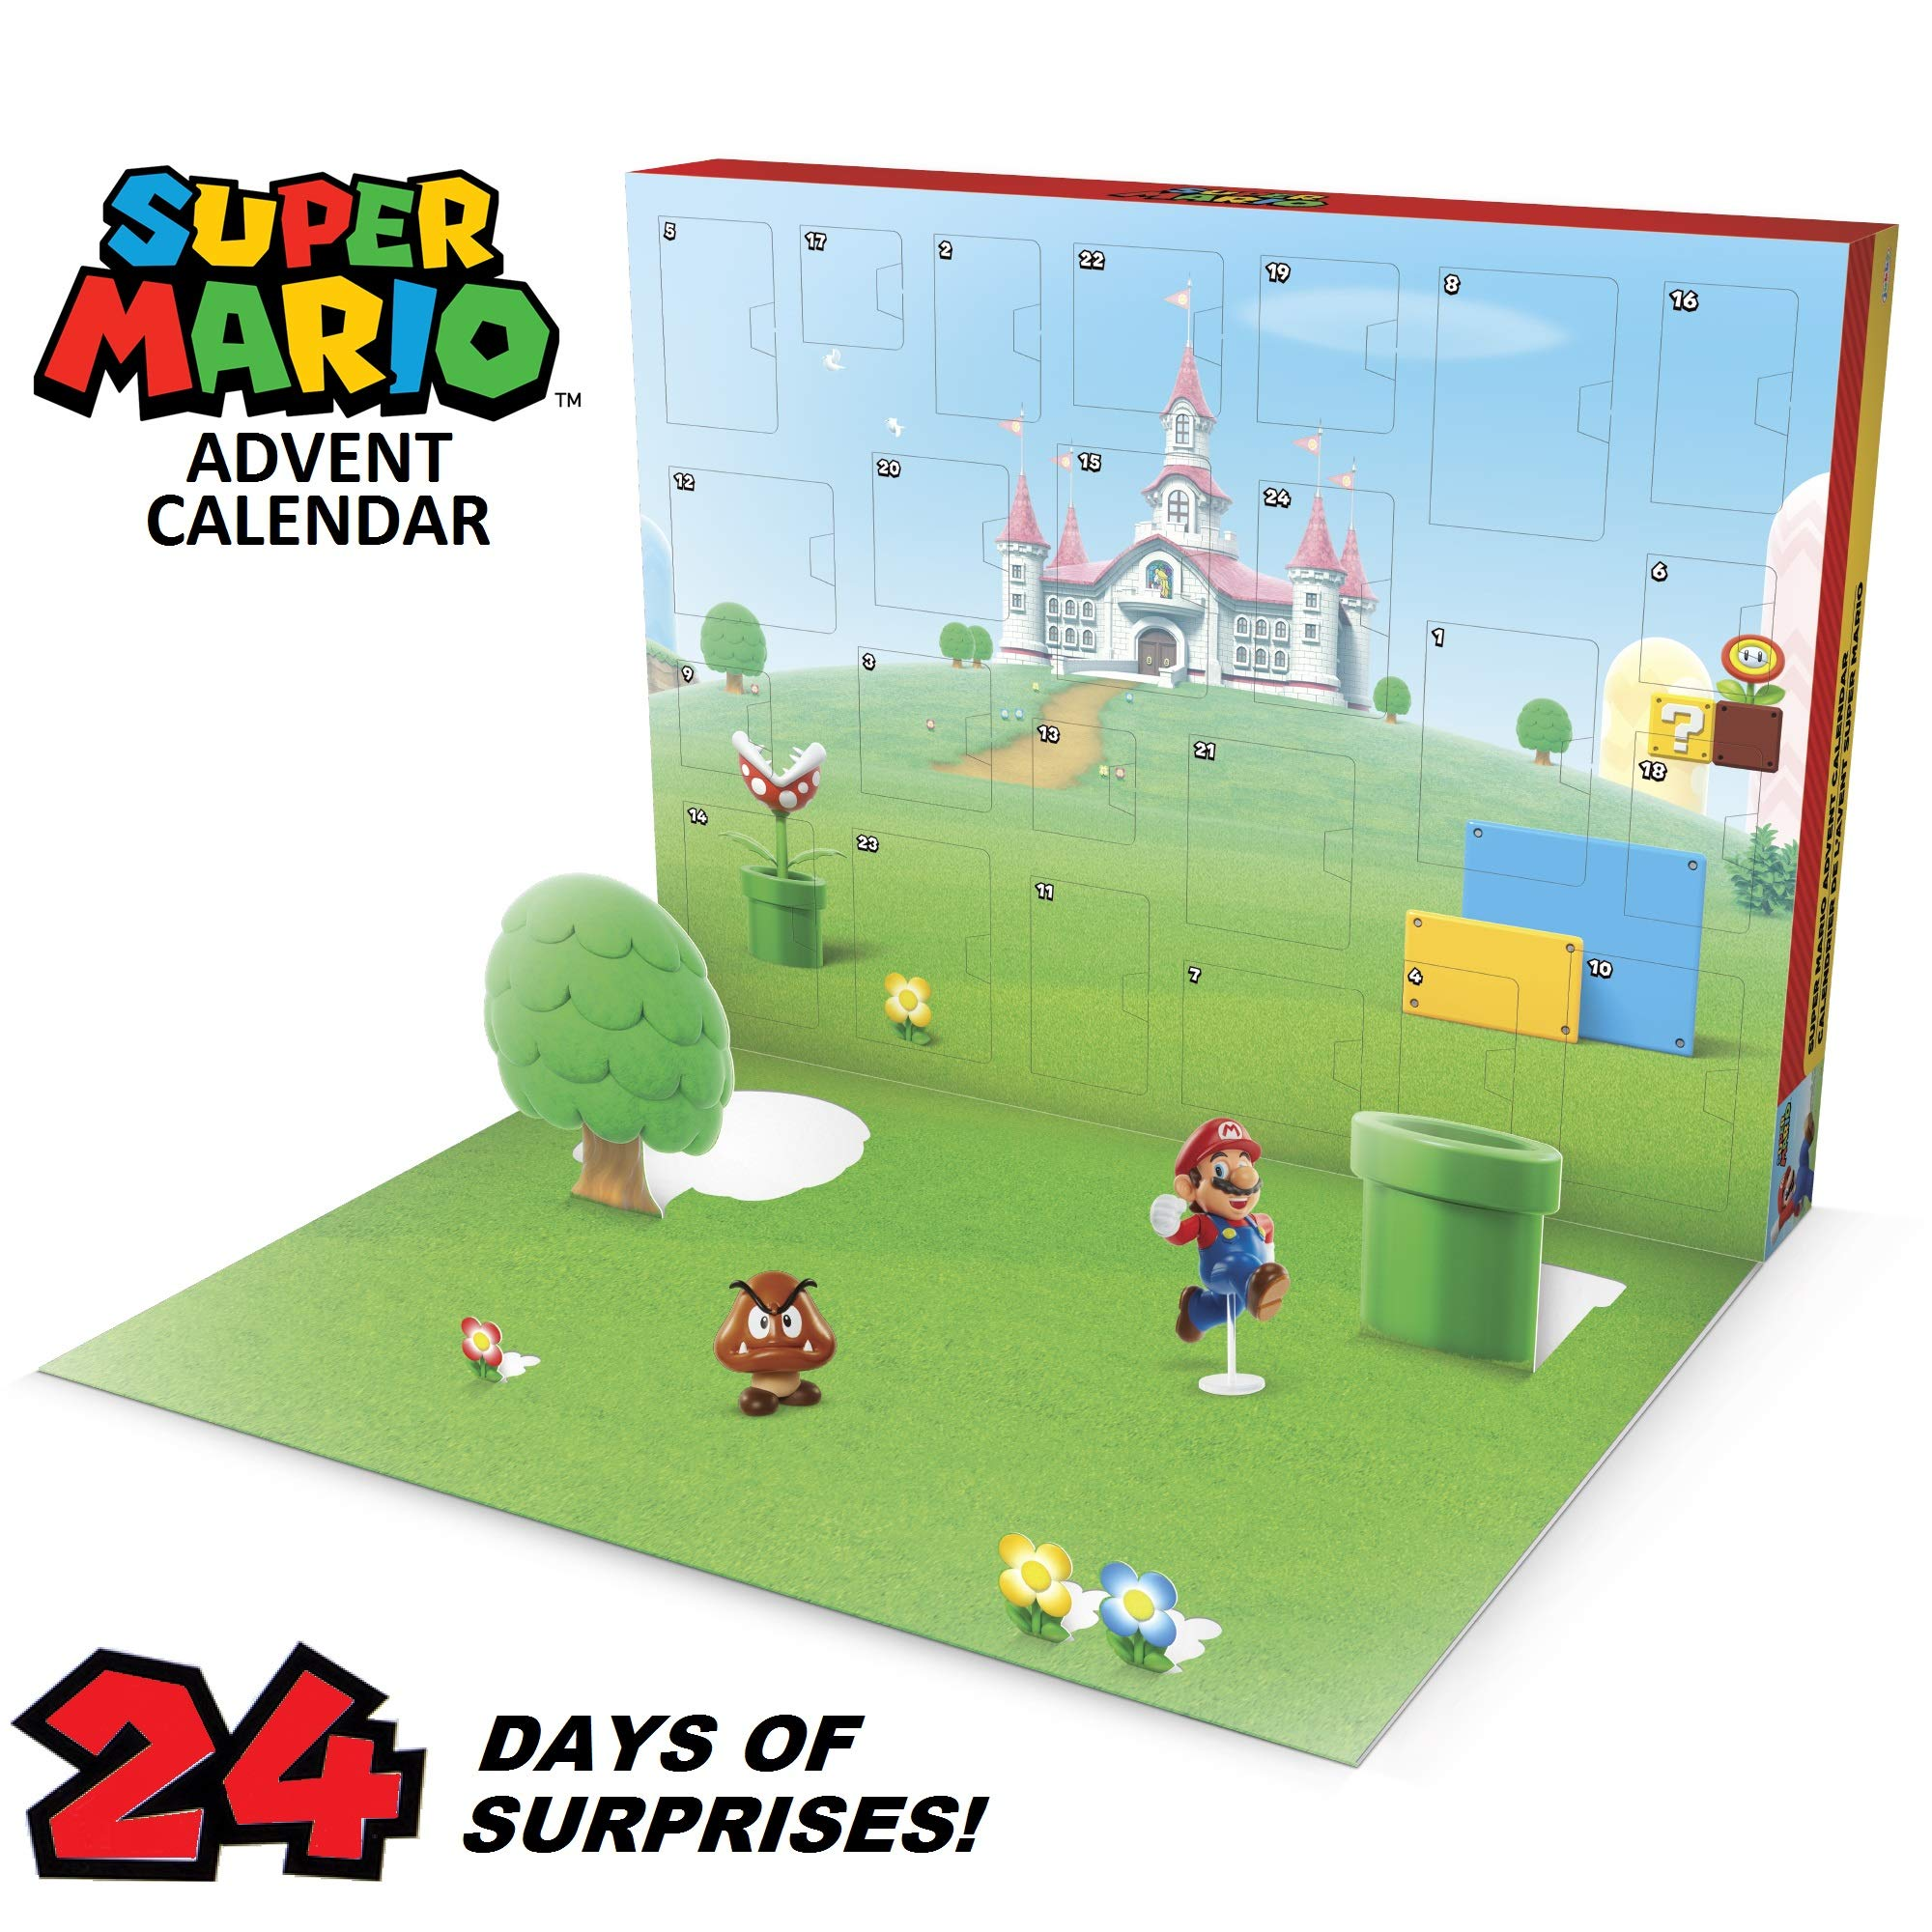 Nintendo Advent Calendar Super Mario Christmas Holiday Calendar with 17 Articulated 2.5'' Action Figures & 7 Accessories, 24 Day Surprise Countdown with Pop-Up Environment [Amazon Exclusive] by Nintendo